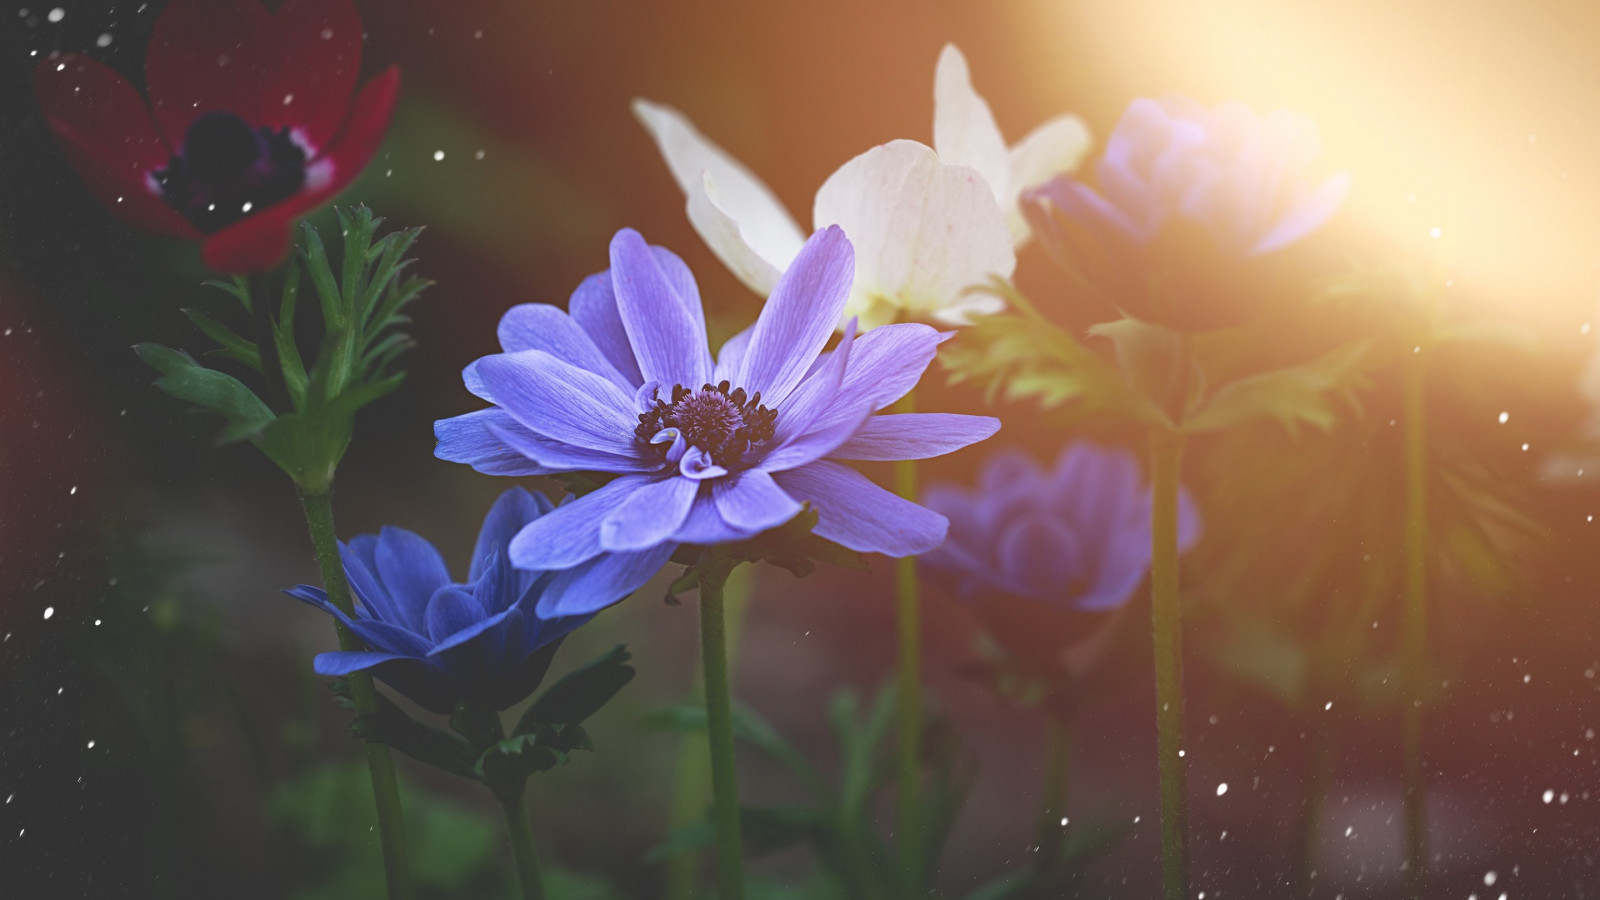 Anemone flowers | 1600x900 wallpaper